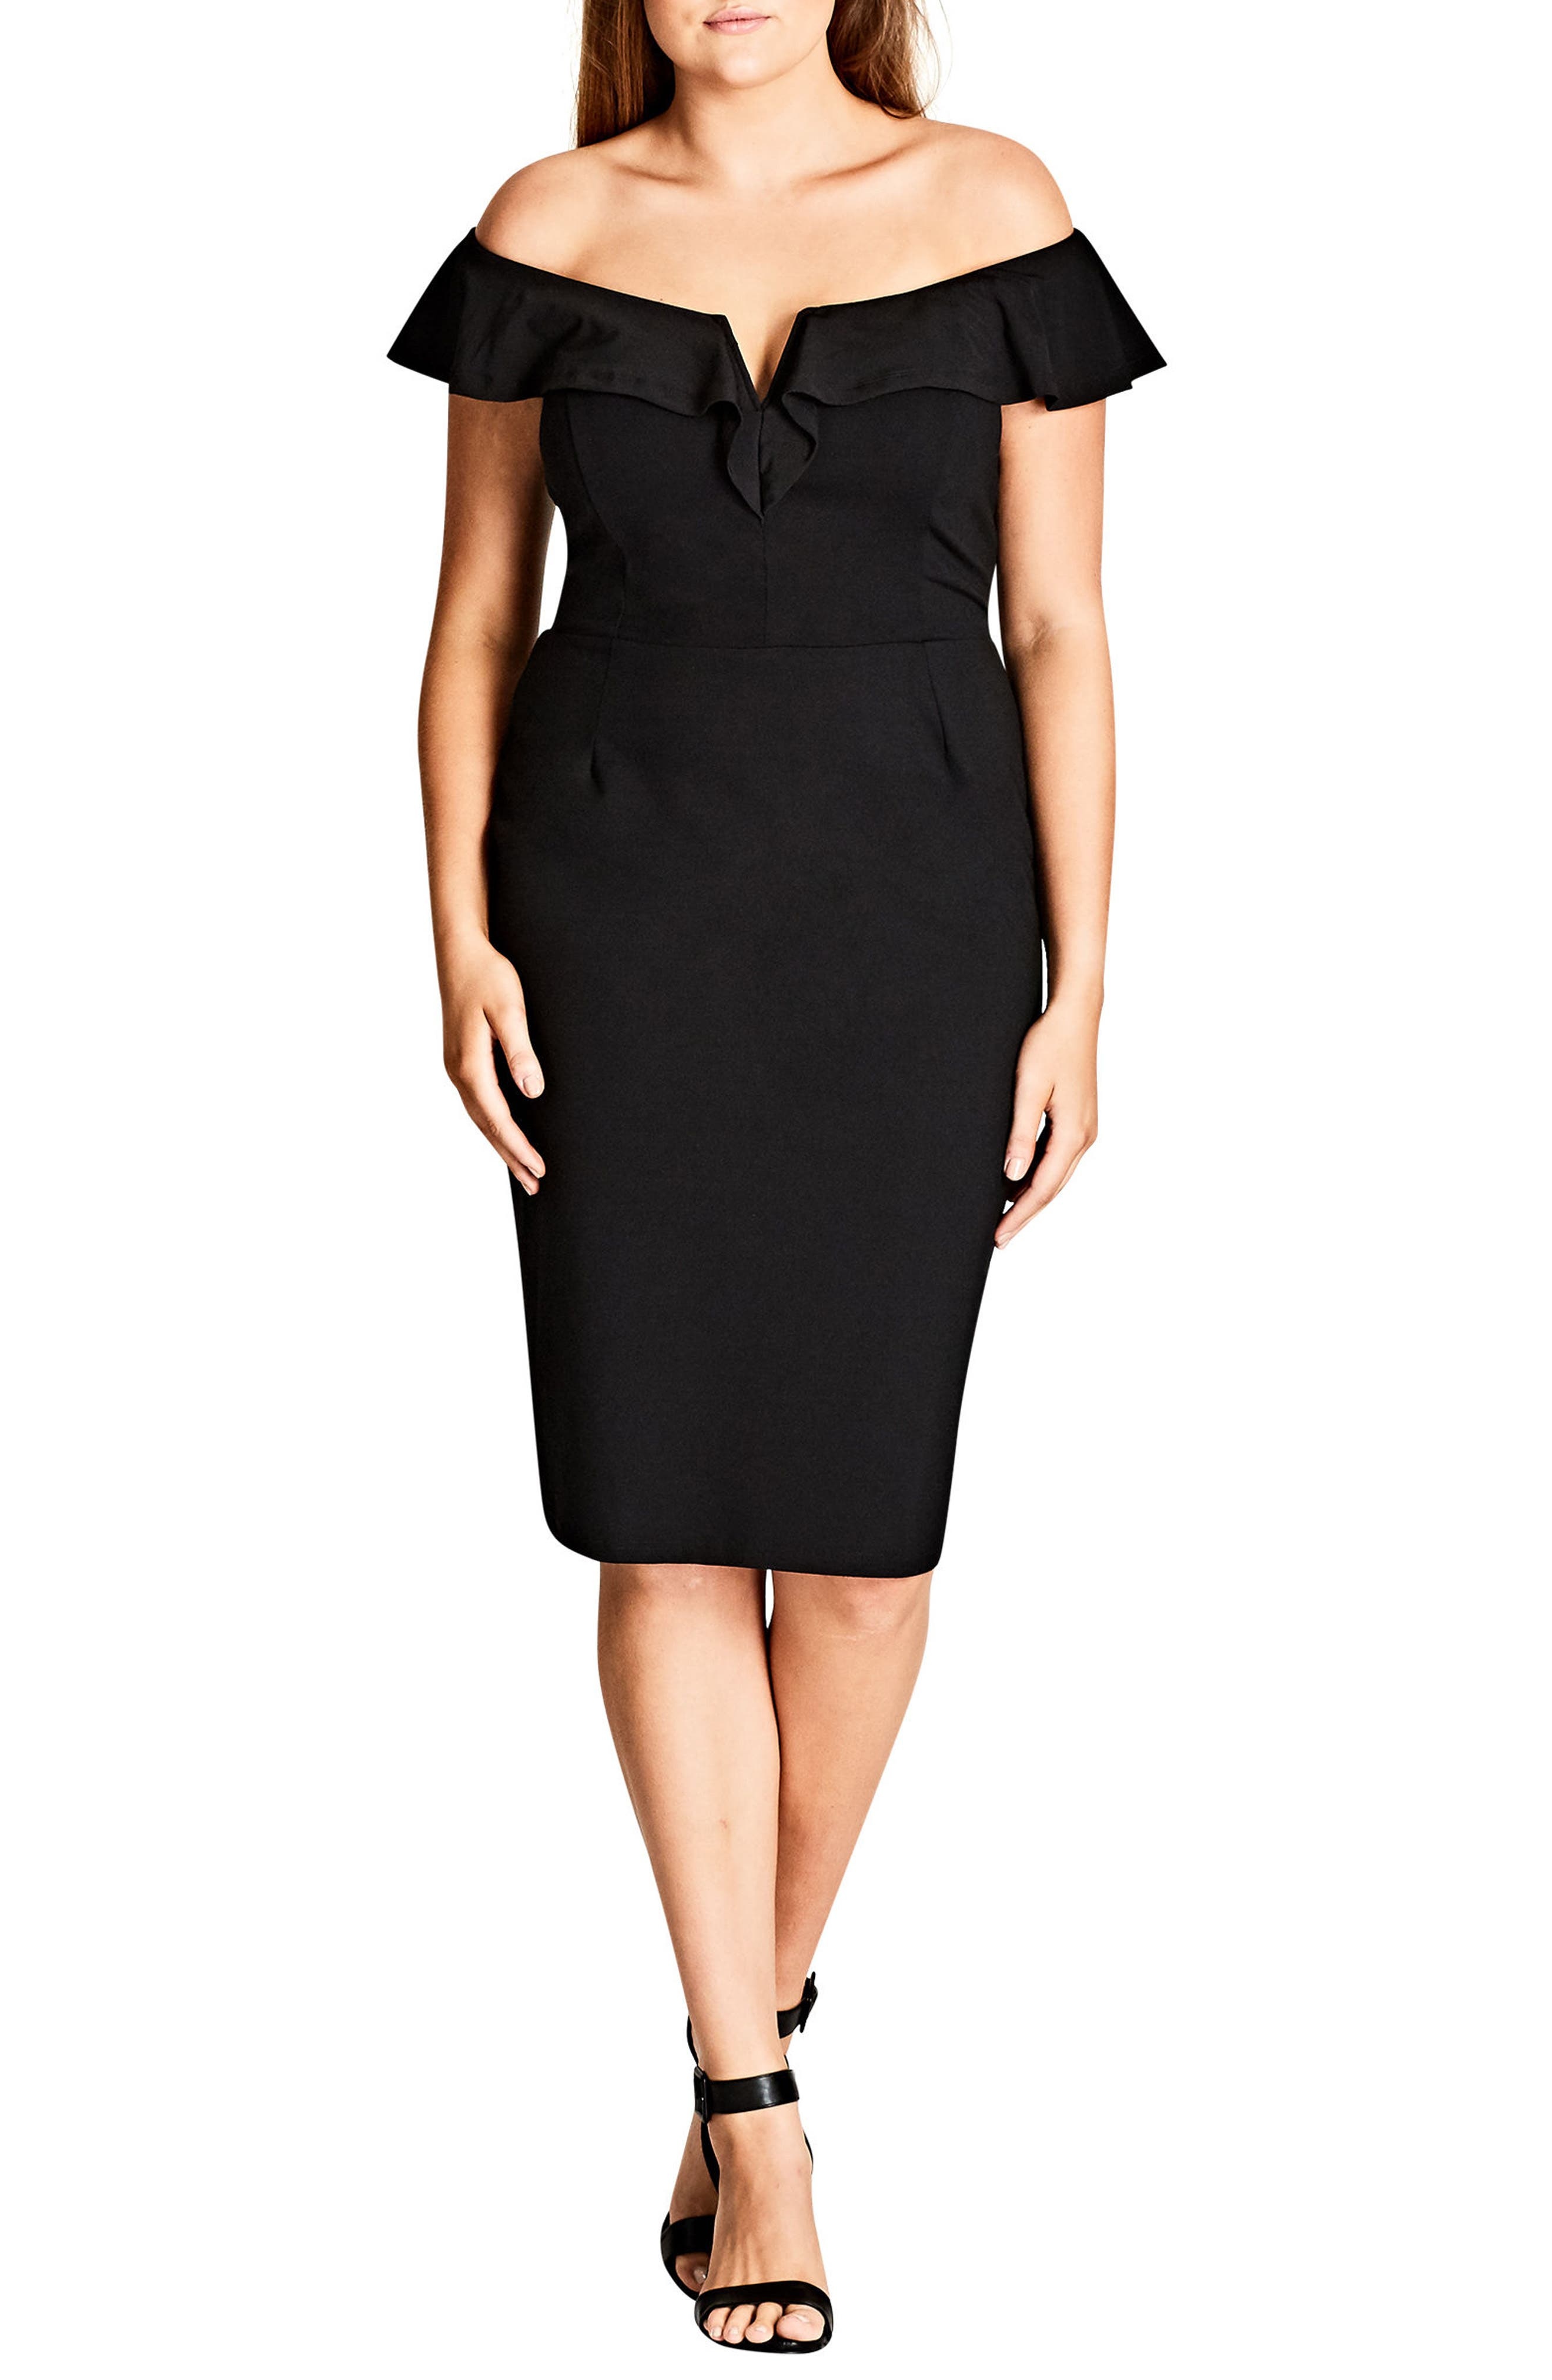 Alternate Image 1 Selected - City Chic Plunge Frill Sheath Dress (Plus Size)